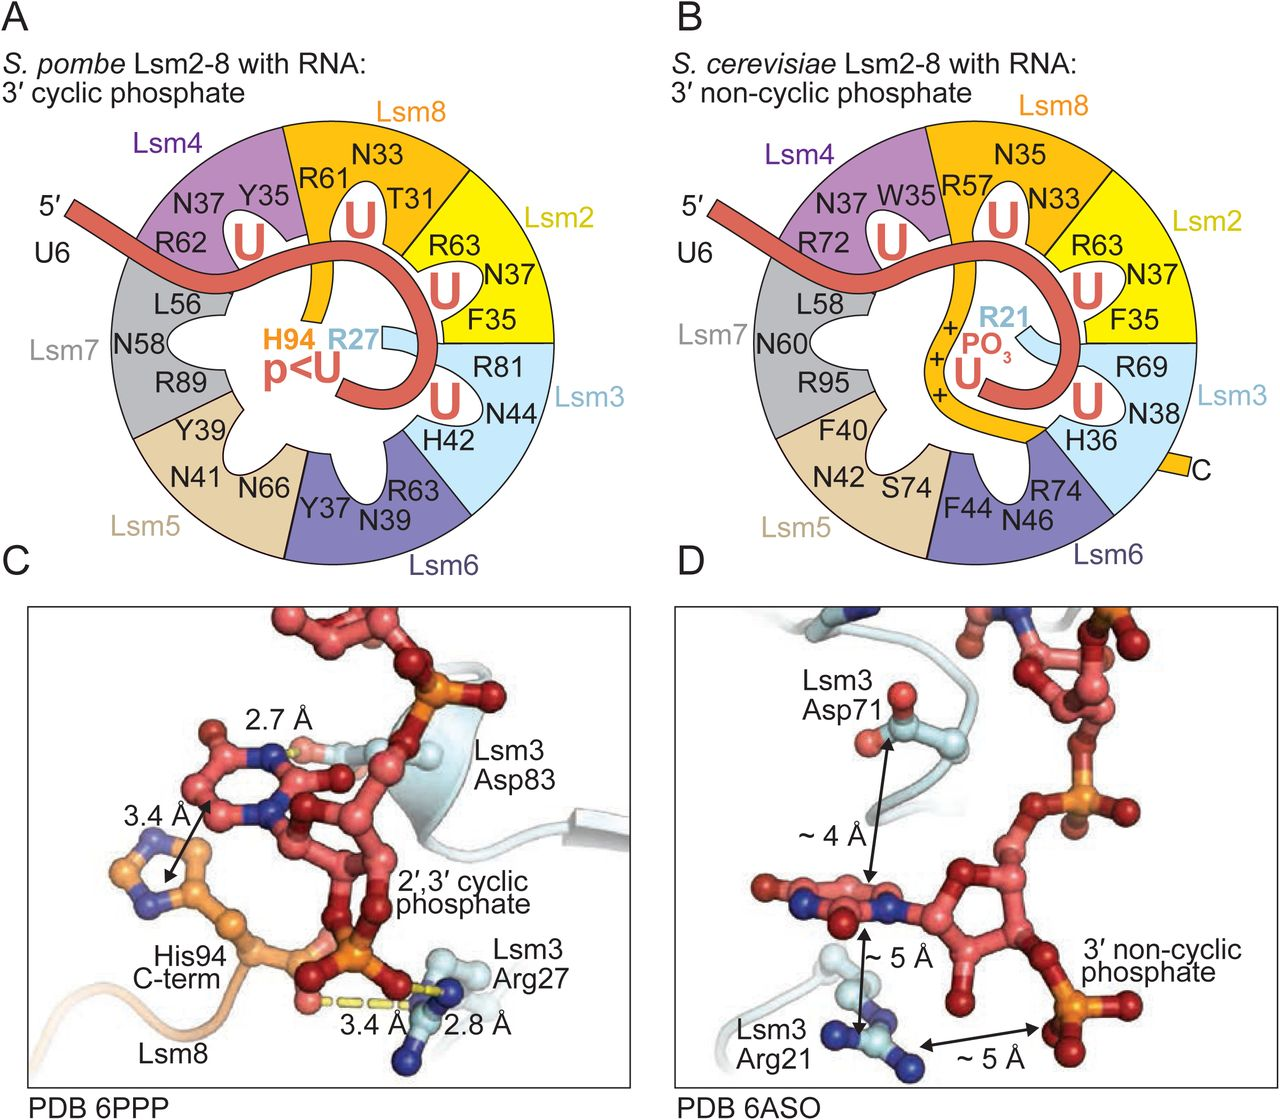 Comparison of how 3' processed U6 RNA is recognized by S. cerevisiae and S. pombe Lsm2-8. A) S. pombe Lsm2-8 binds the 3′ uridine cyclic phosphate in the middle of the ring through non-Sm contacts with Lsm8 and Lsm3. B) The C-terminal tail of Lsm8 in S. cerevisiae is elongated and extends past the terminal uridine-phosphate. In lieu of direct interaction with 3′ uridine-phosphate, the tail of Lsm8 in S. cerevisiae interacts with the phosphate through long range electrostatics. C,D) Detailed comparisons of how the cyclic and non-cyclic phosphates are coordinated by the S. pombe and S. cerevisiae Lsm2-8 rings, respectively. Lsm3-Arg27 directly coordinates the cyclic phosphate in S. pombe .